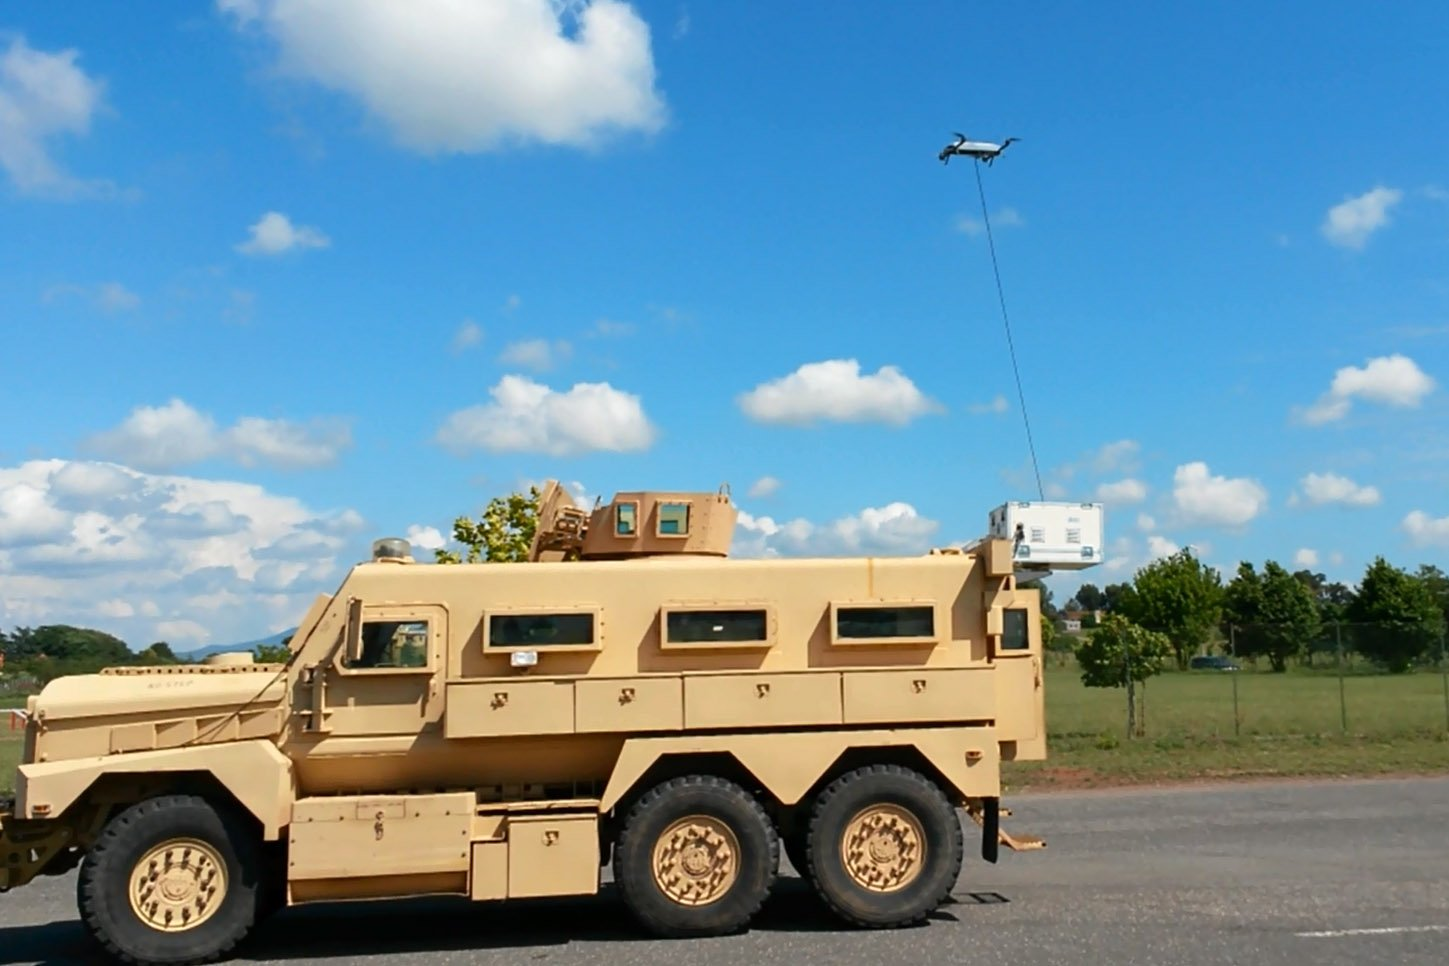 Italian Army Is Evaluating A Tethered Uav For Convoy